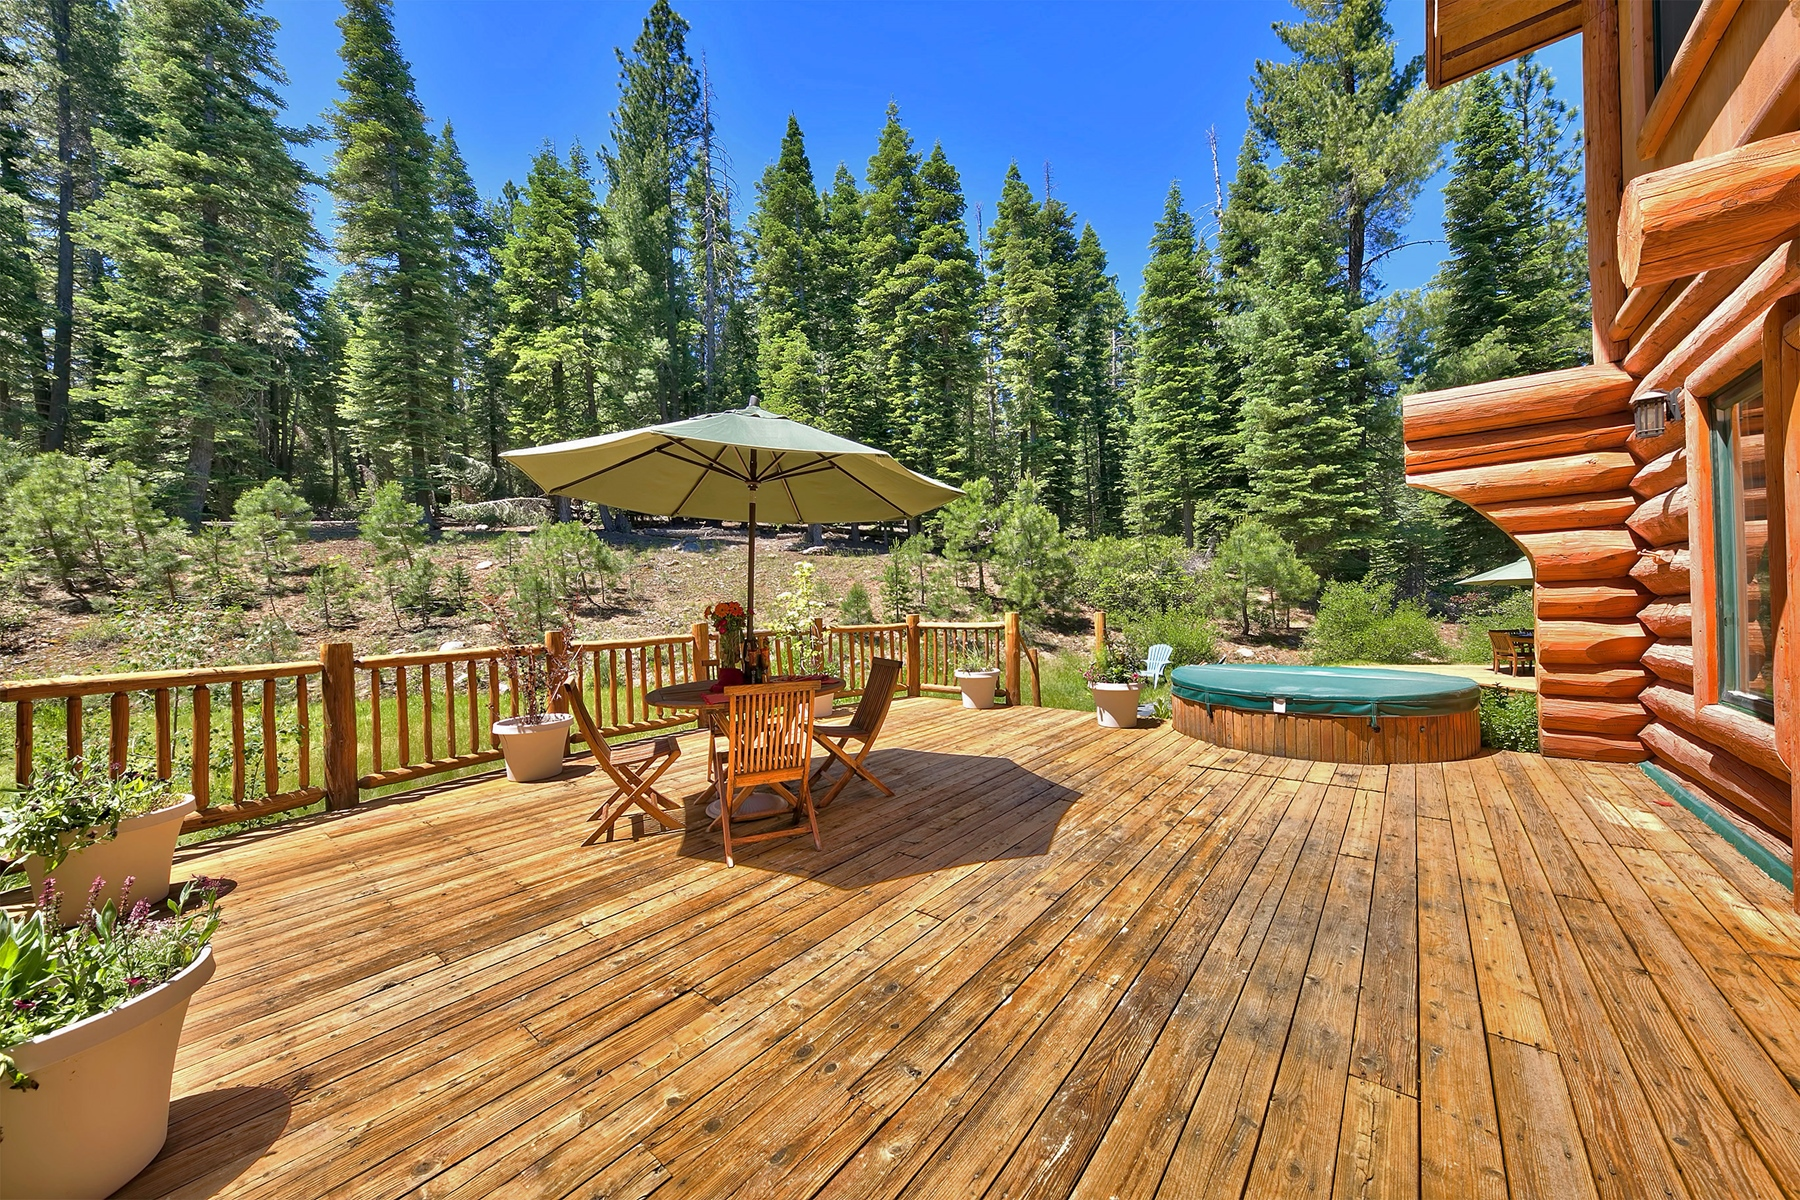 Additional photo for property listing at 11979 Stony Creek Court, Truckee CA 96161 11979 Stony Creek Court Truckee, California 96161 United States